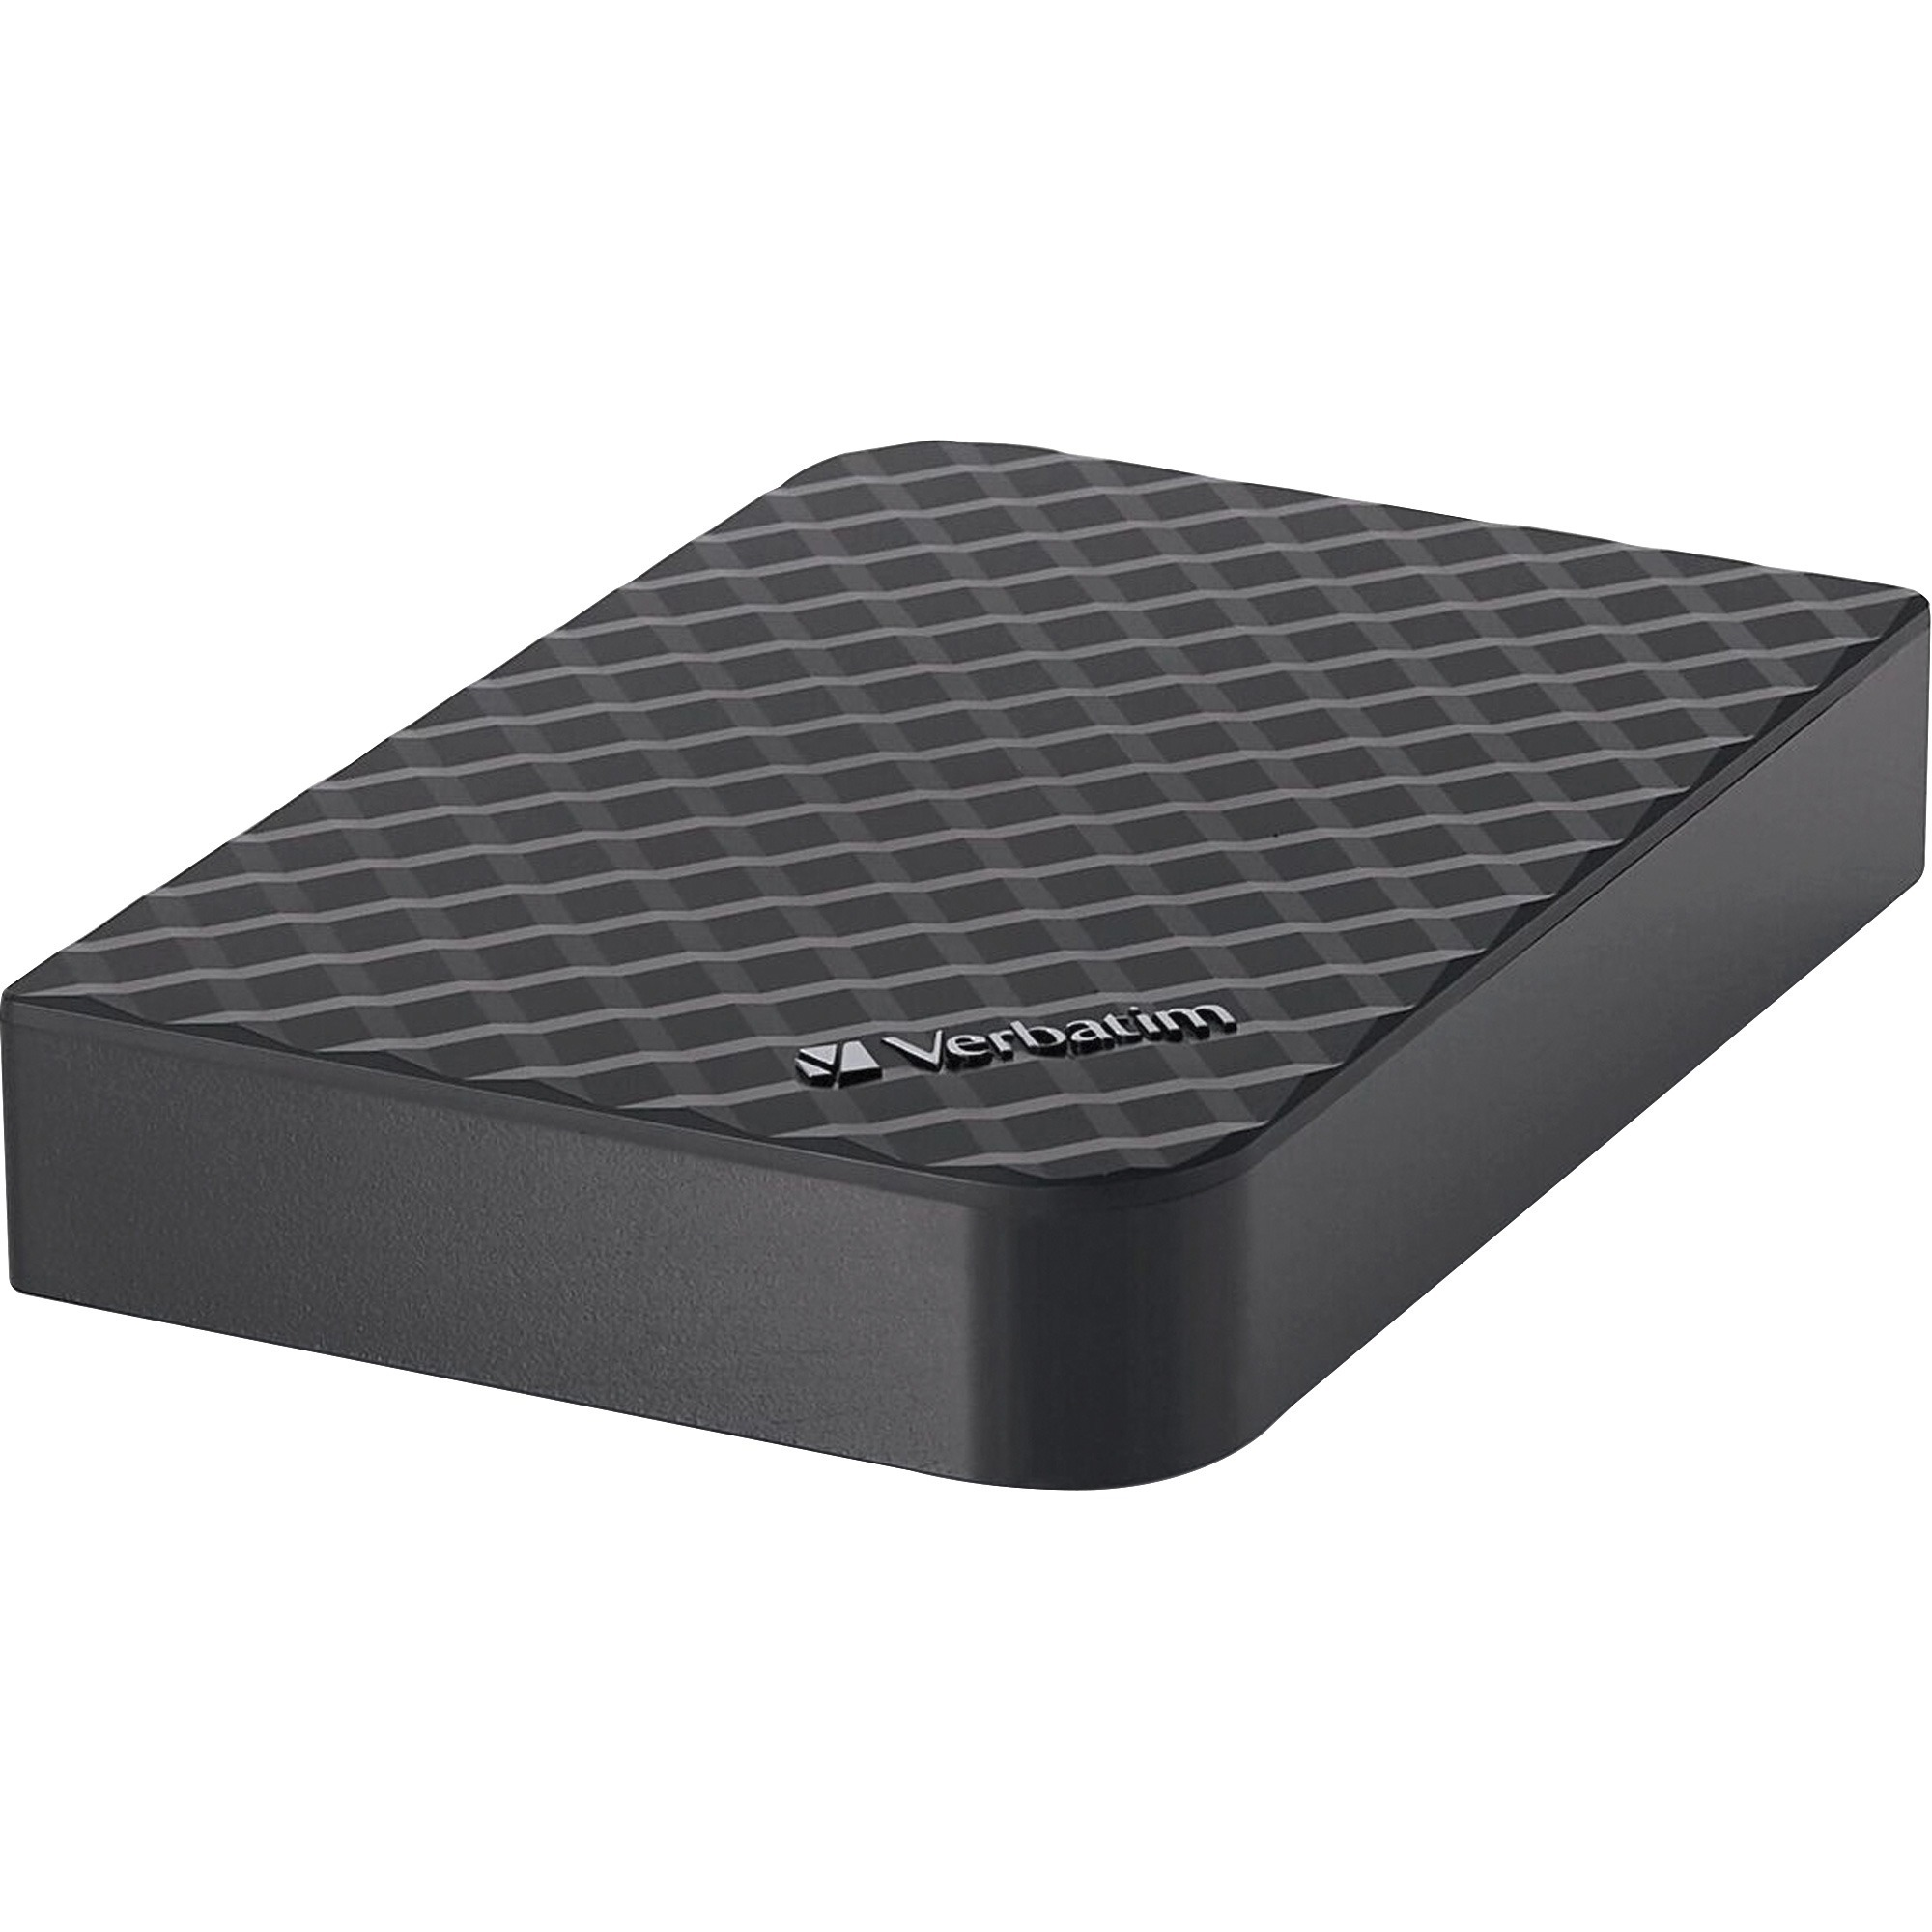 Verbatim, VER97580, 2TB Store 'n' Save Desktop Hard Drive, USB 3.0 - Diamond Black, 1, Diamond Black